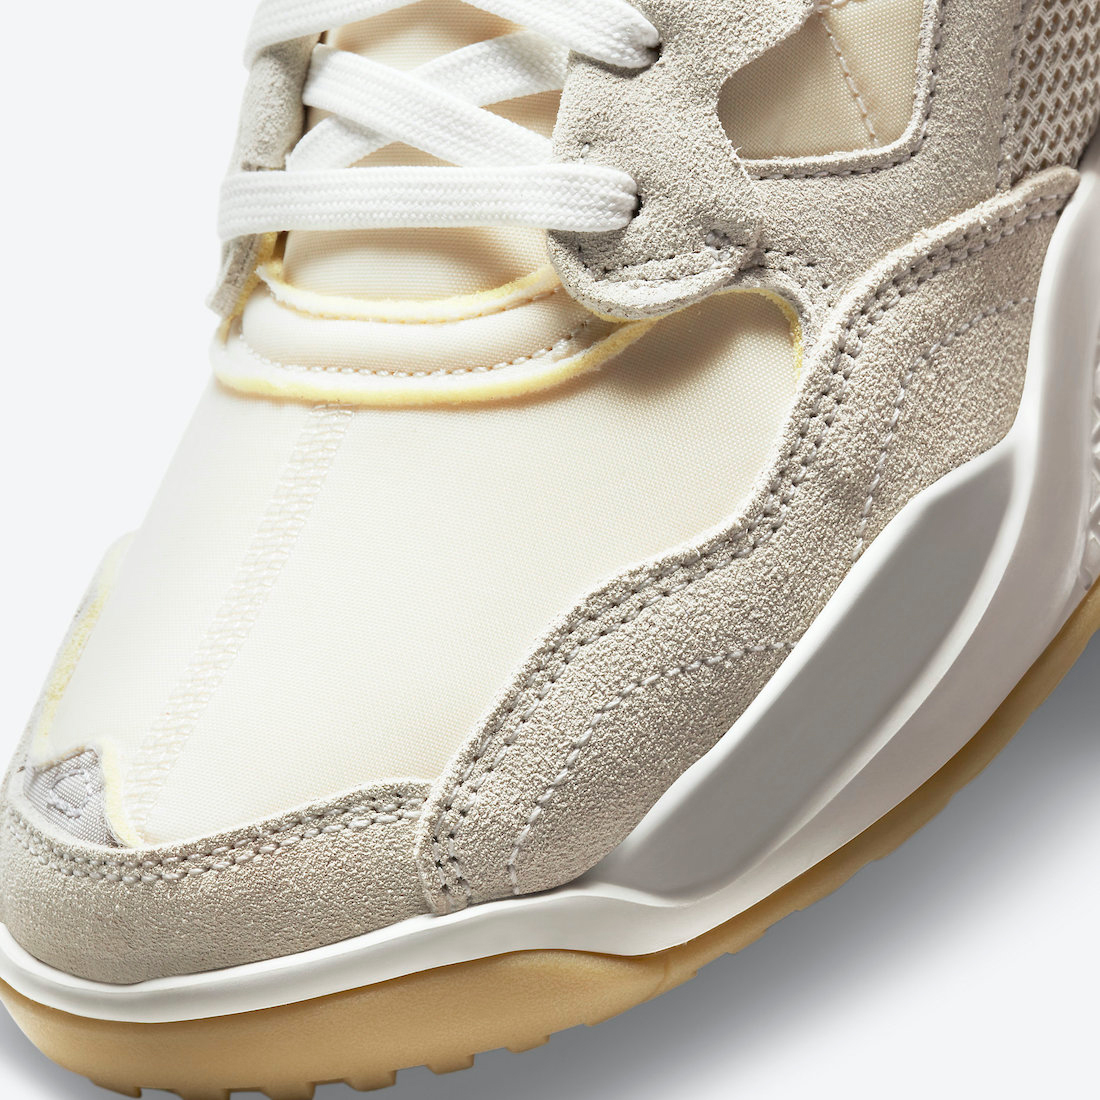 jordan-ma2-future-beginnings-release-date-price-resell-where-to-buy-7